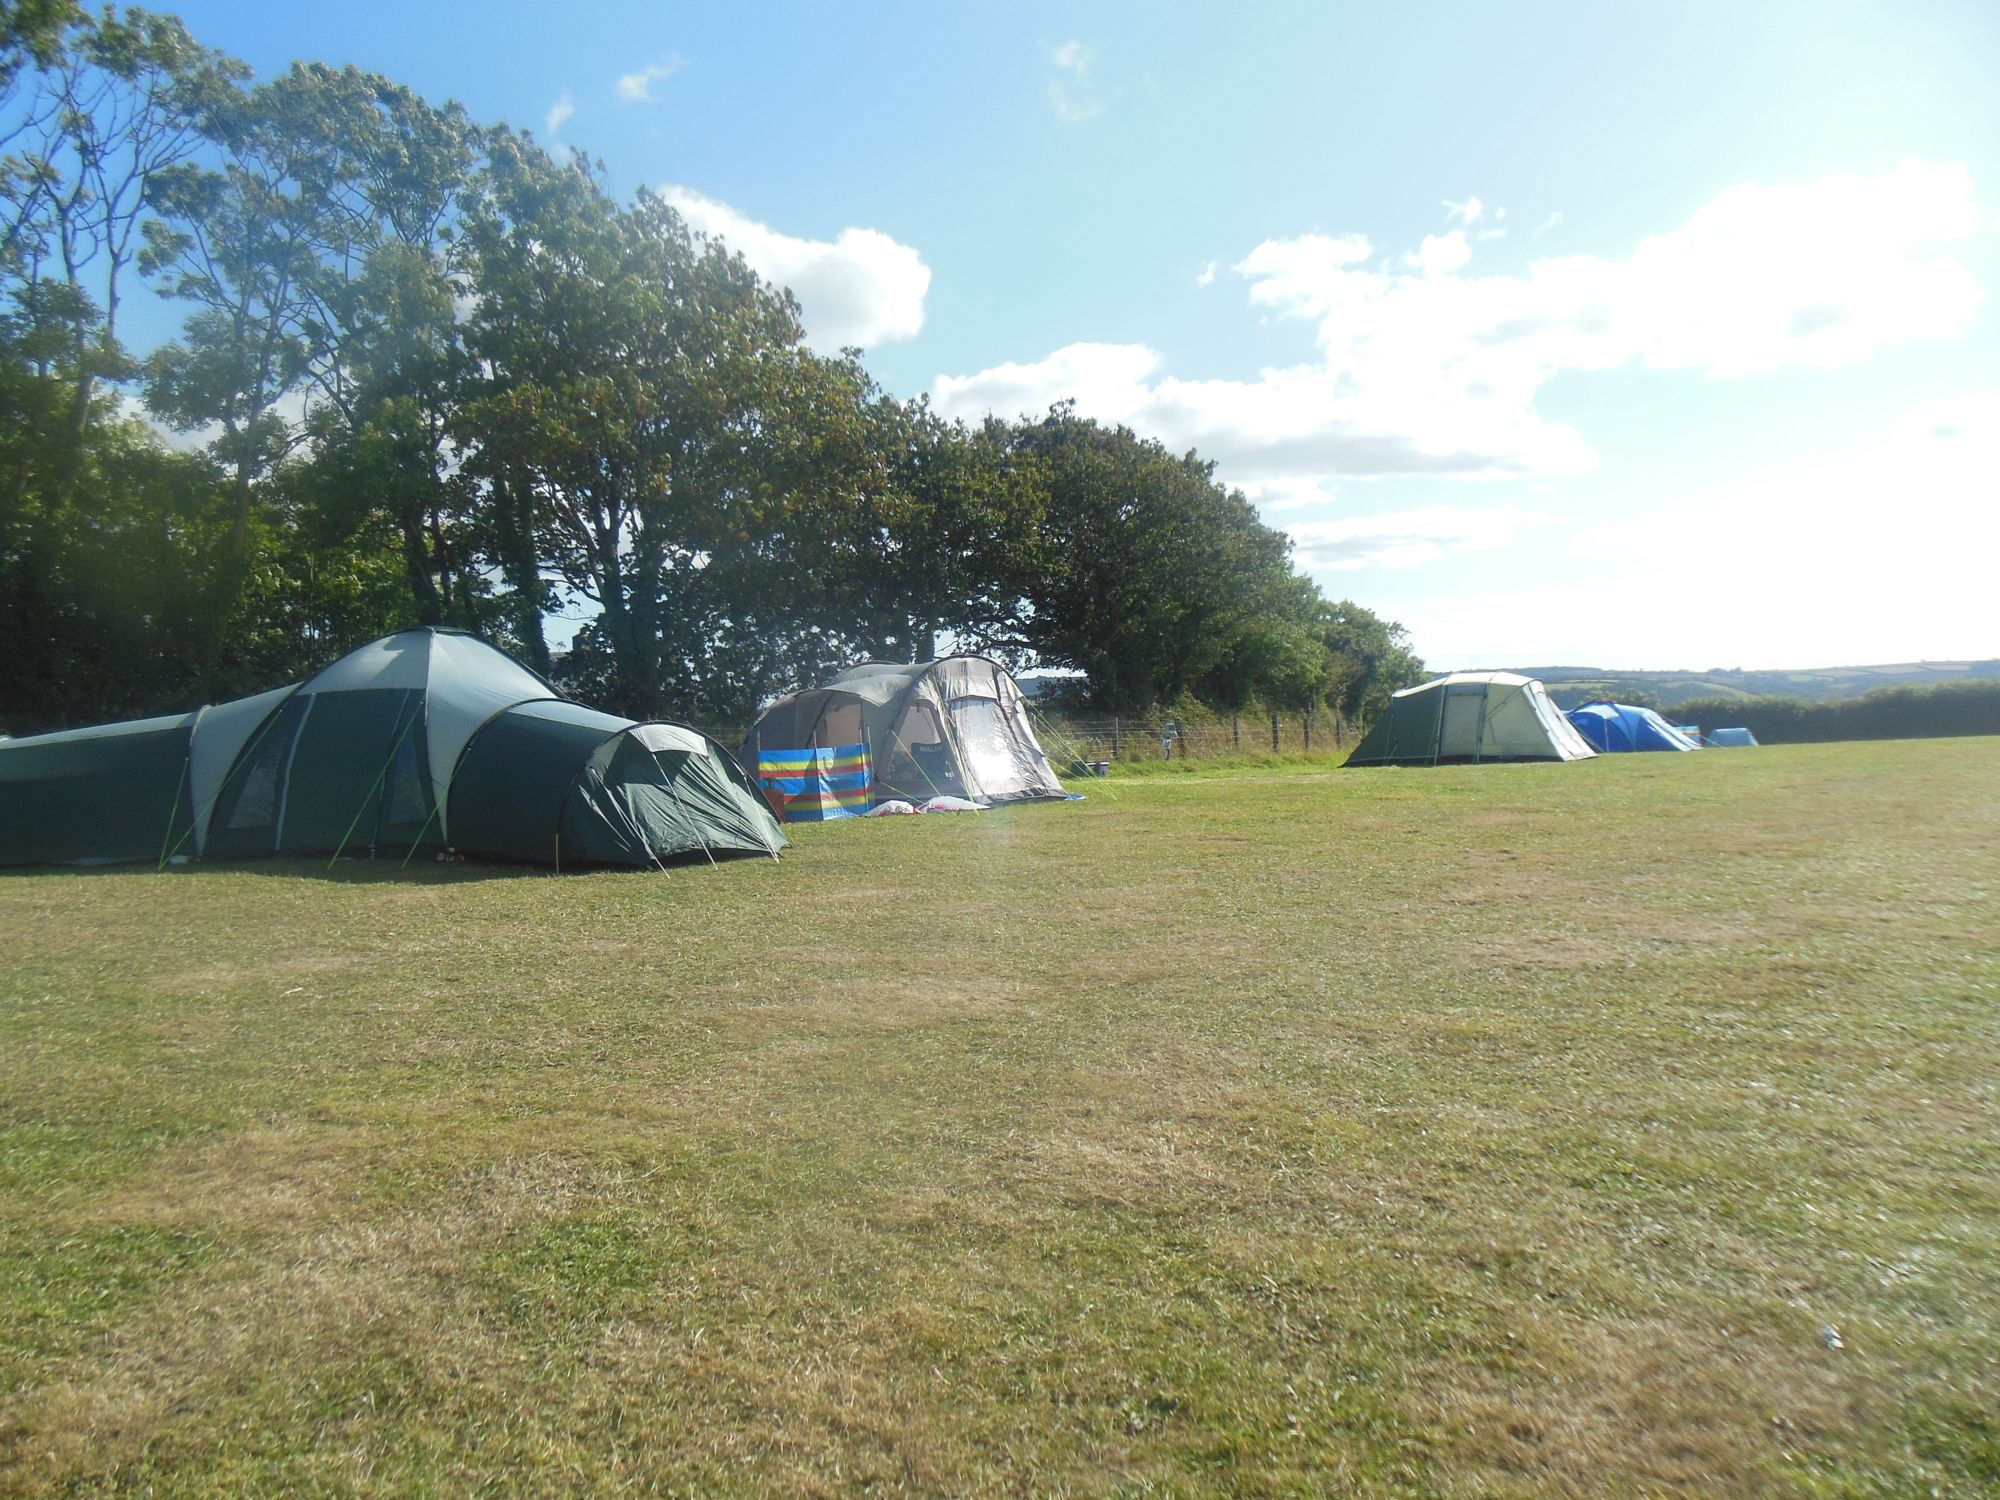 Campsites & Campgrounds - the very best campsites in the world rated by our readers at i love this campsite